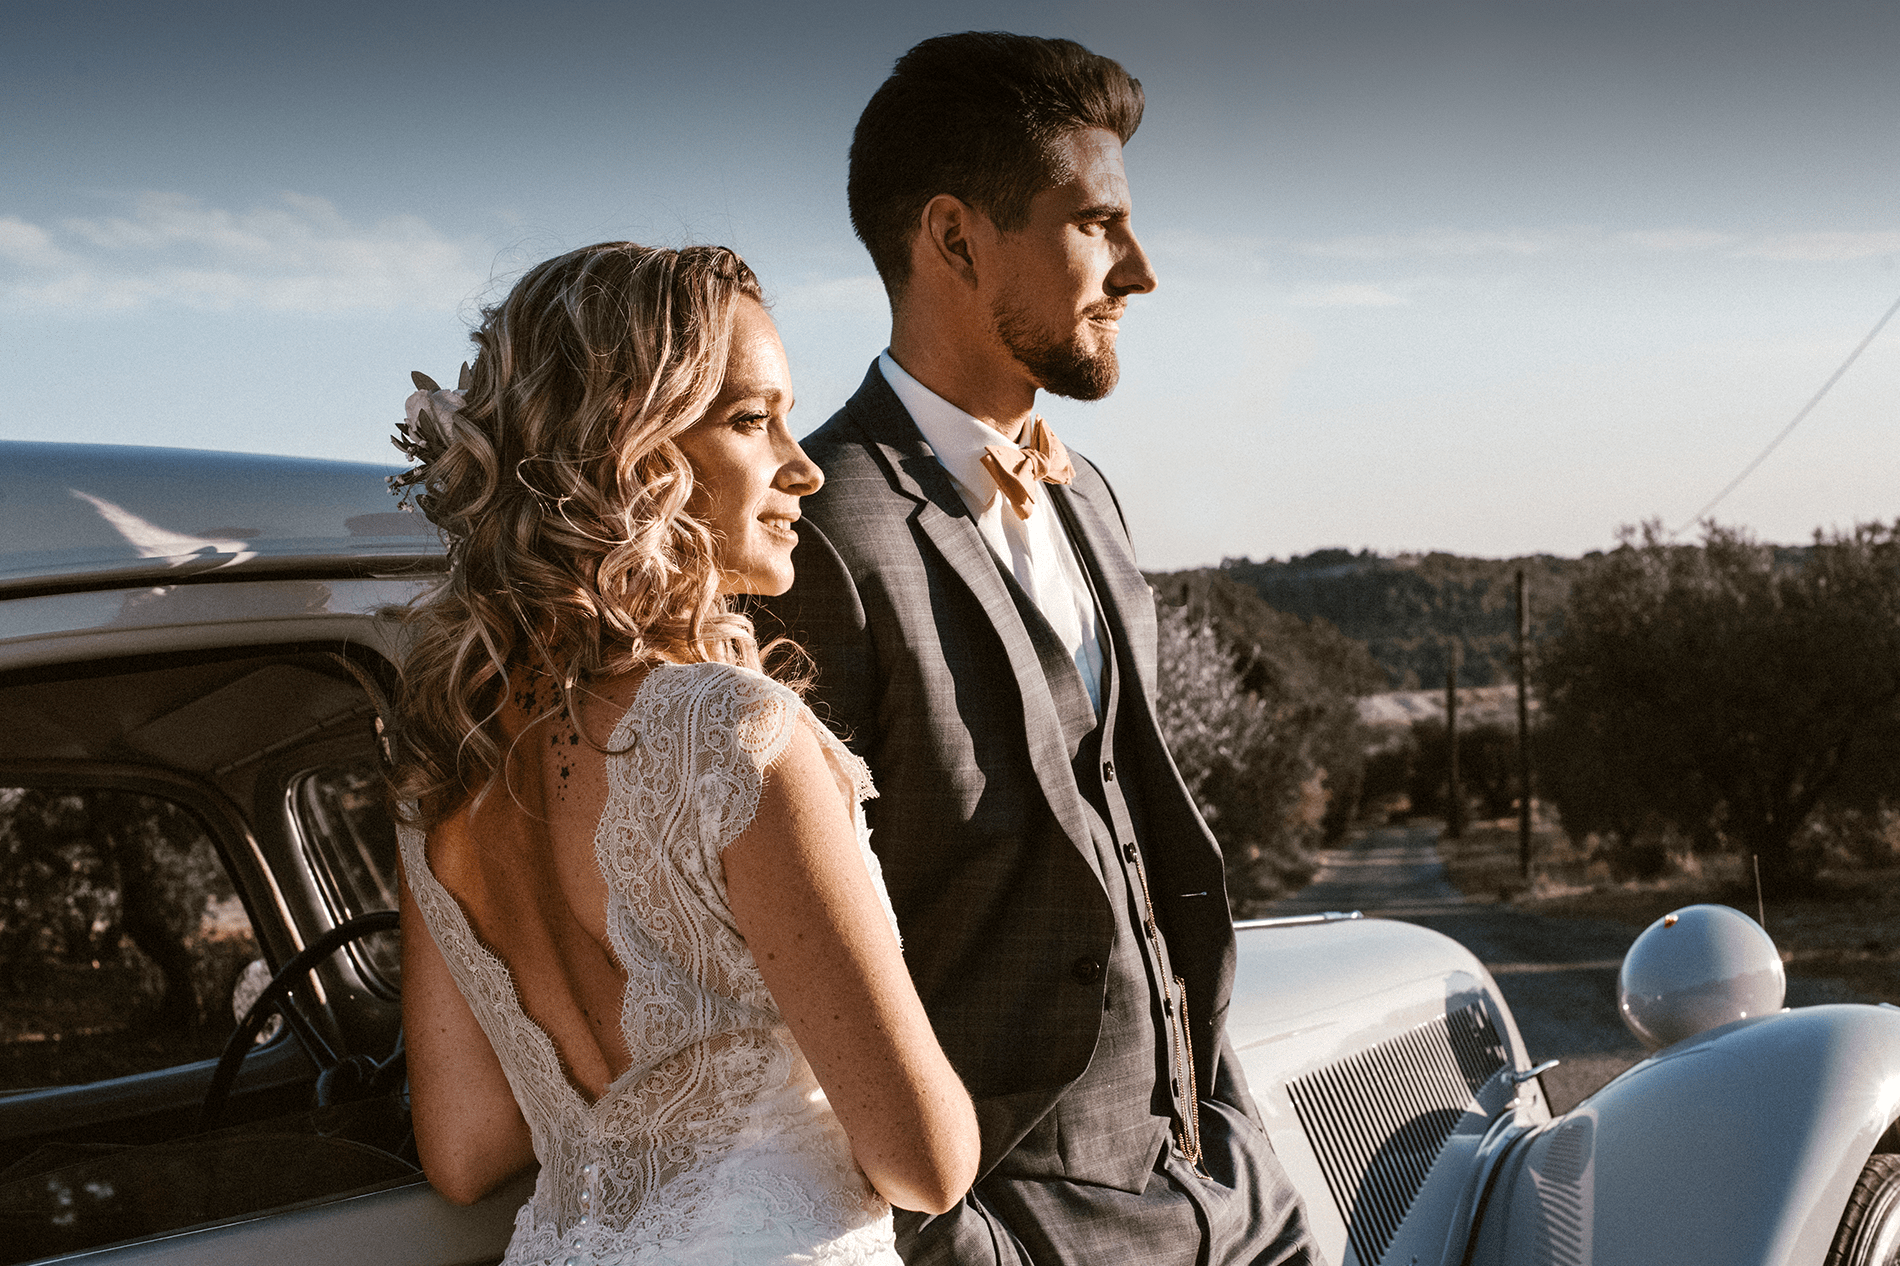 vinced photo mariage en provence couple noces marseille